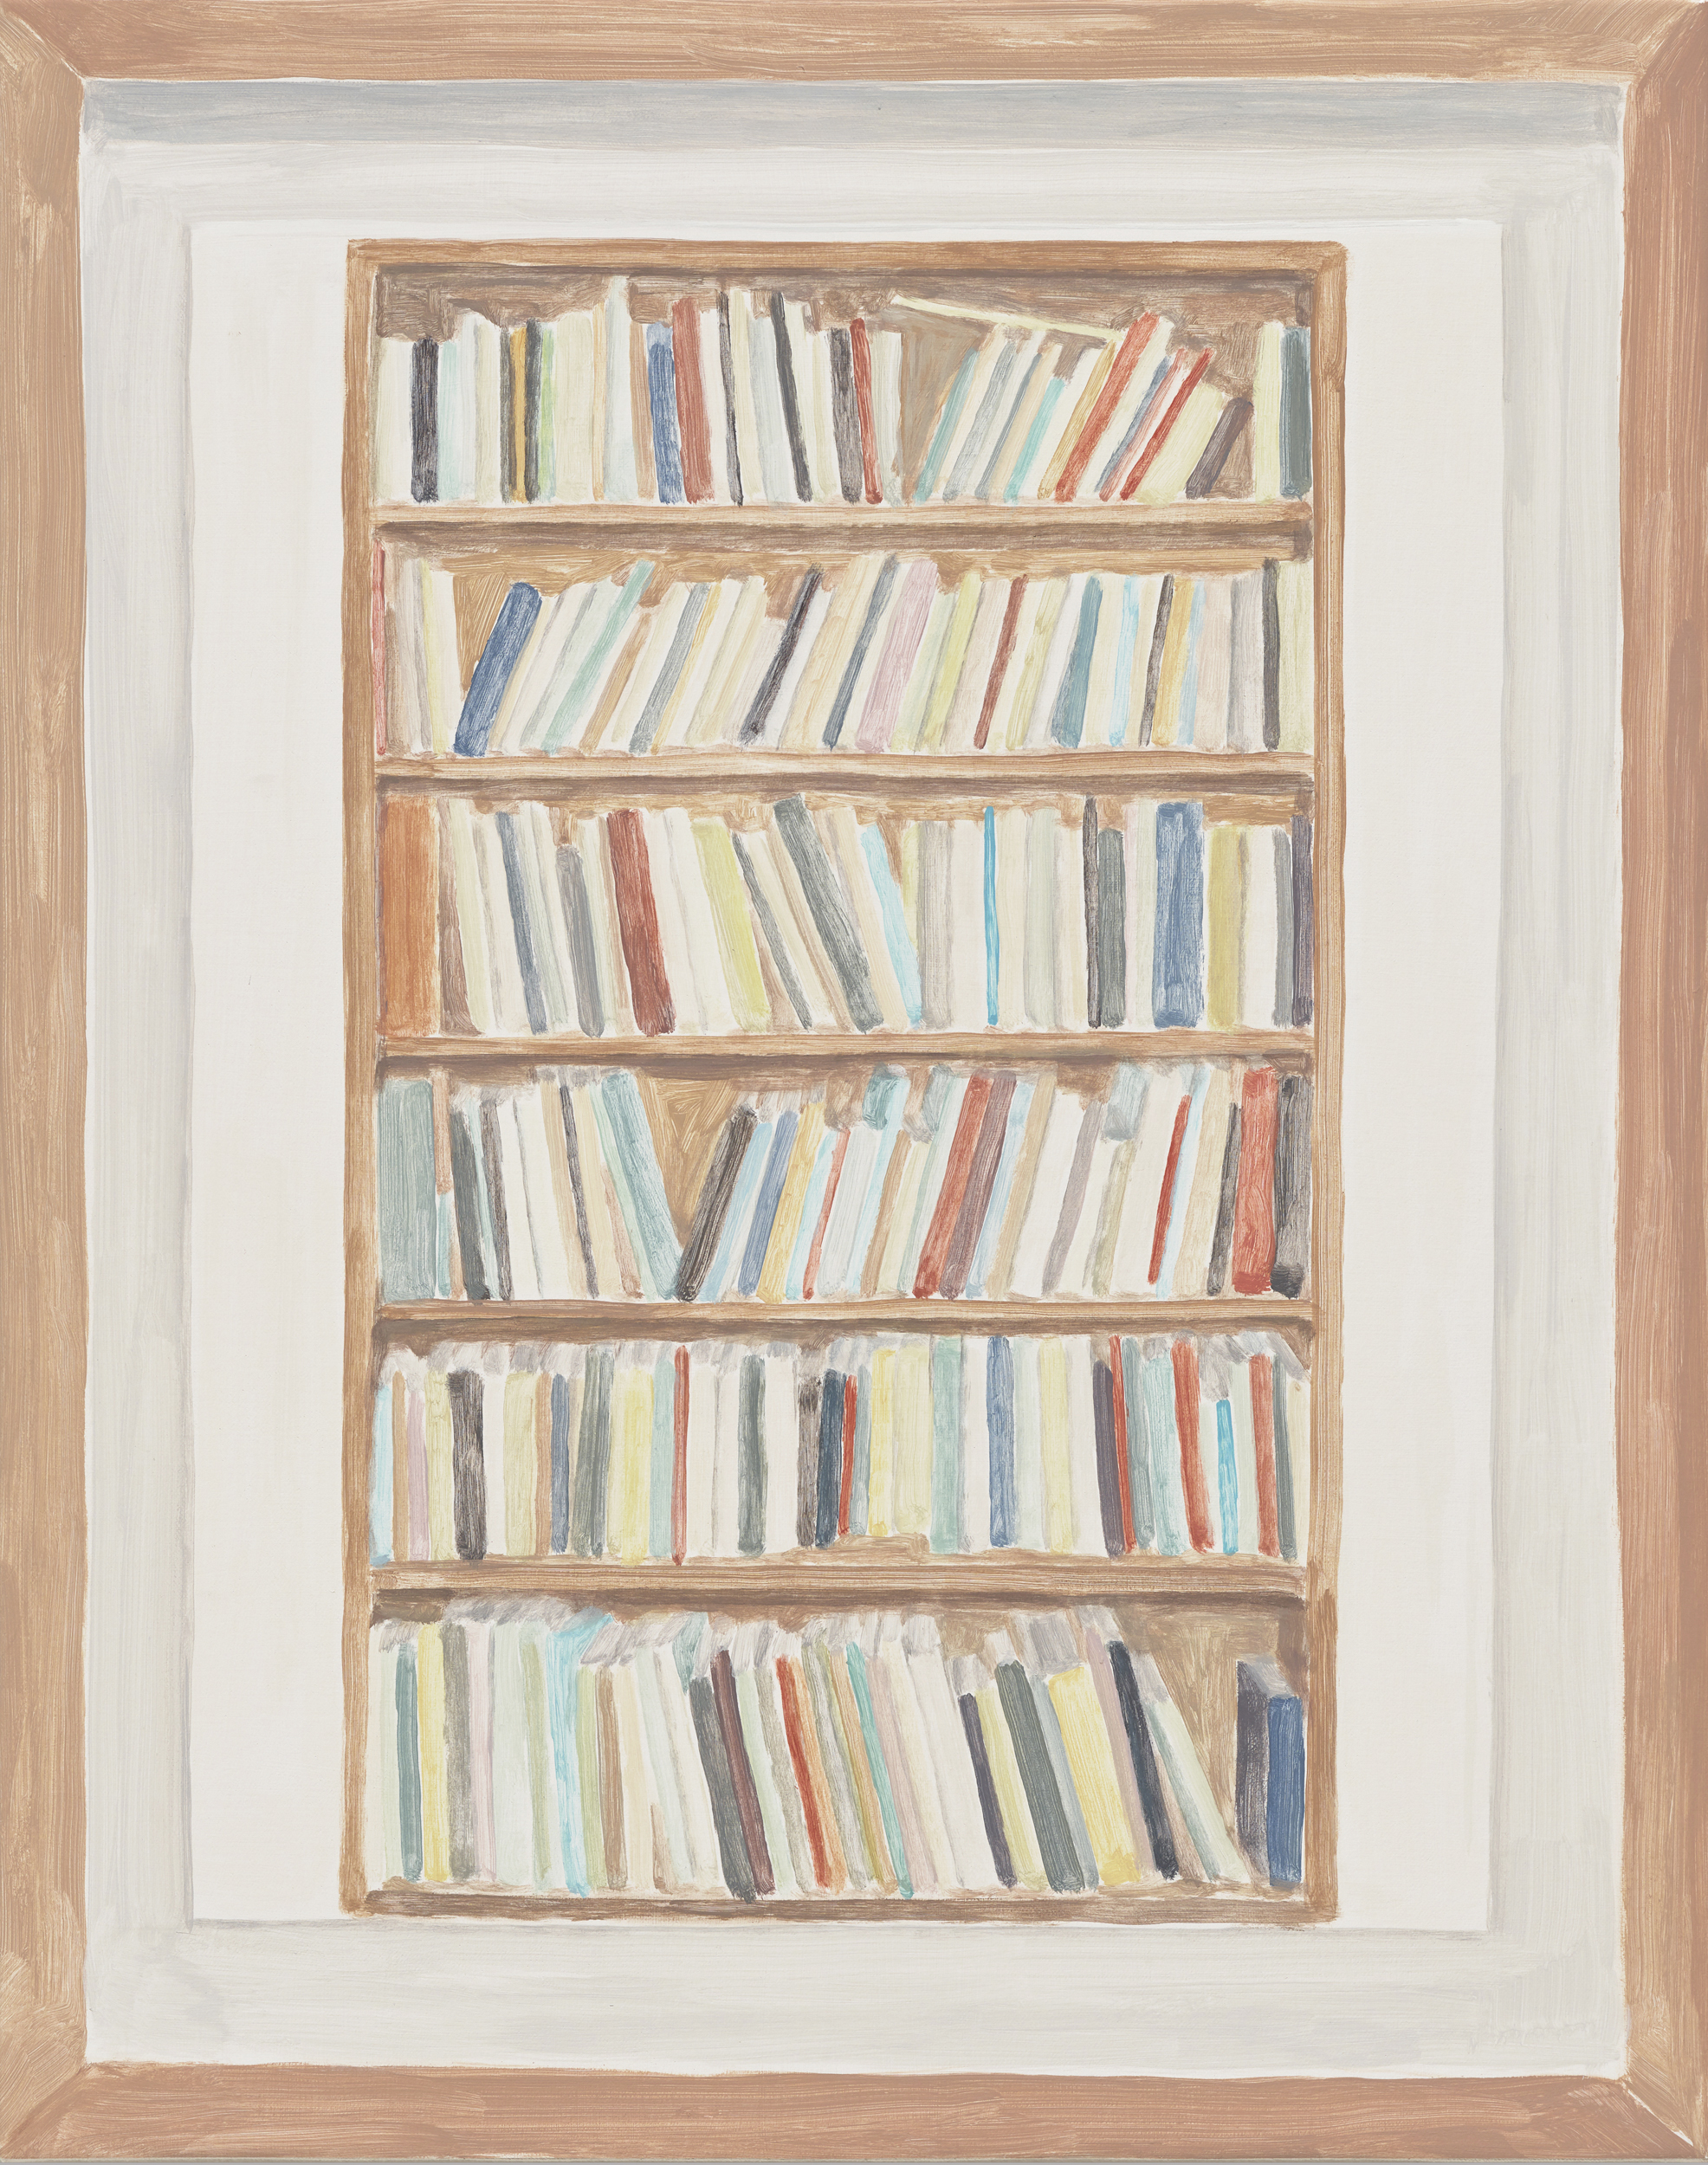 Framed Sketch: Bookshelf 2, acrylic on canvas, 24 x 19 inches, 2018.